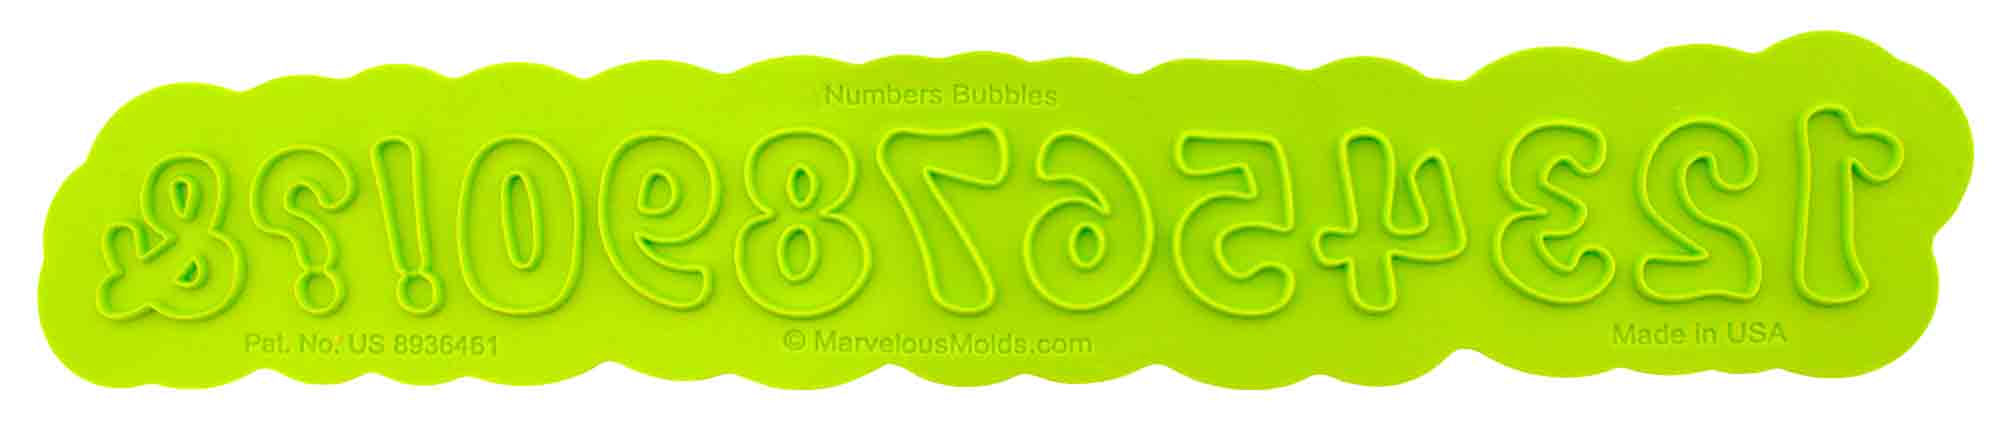 Bubble Numbers Flexabet™